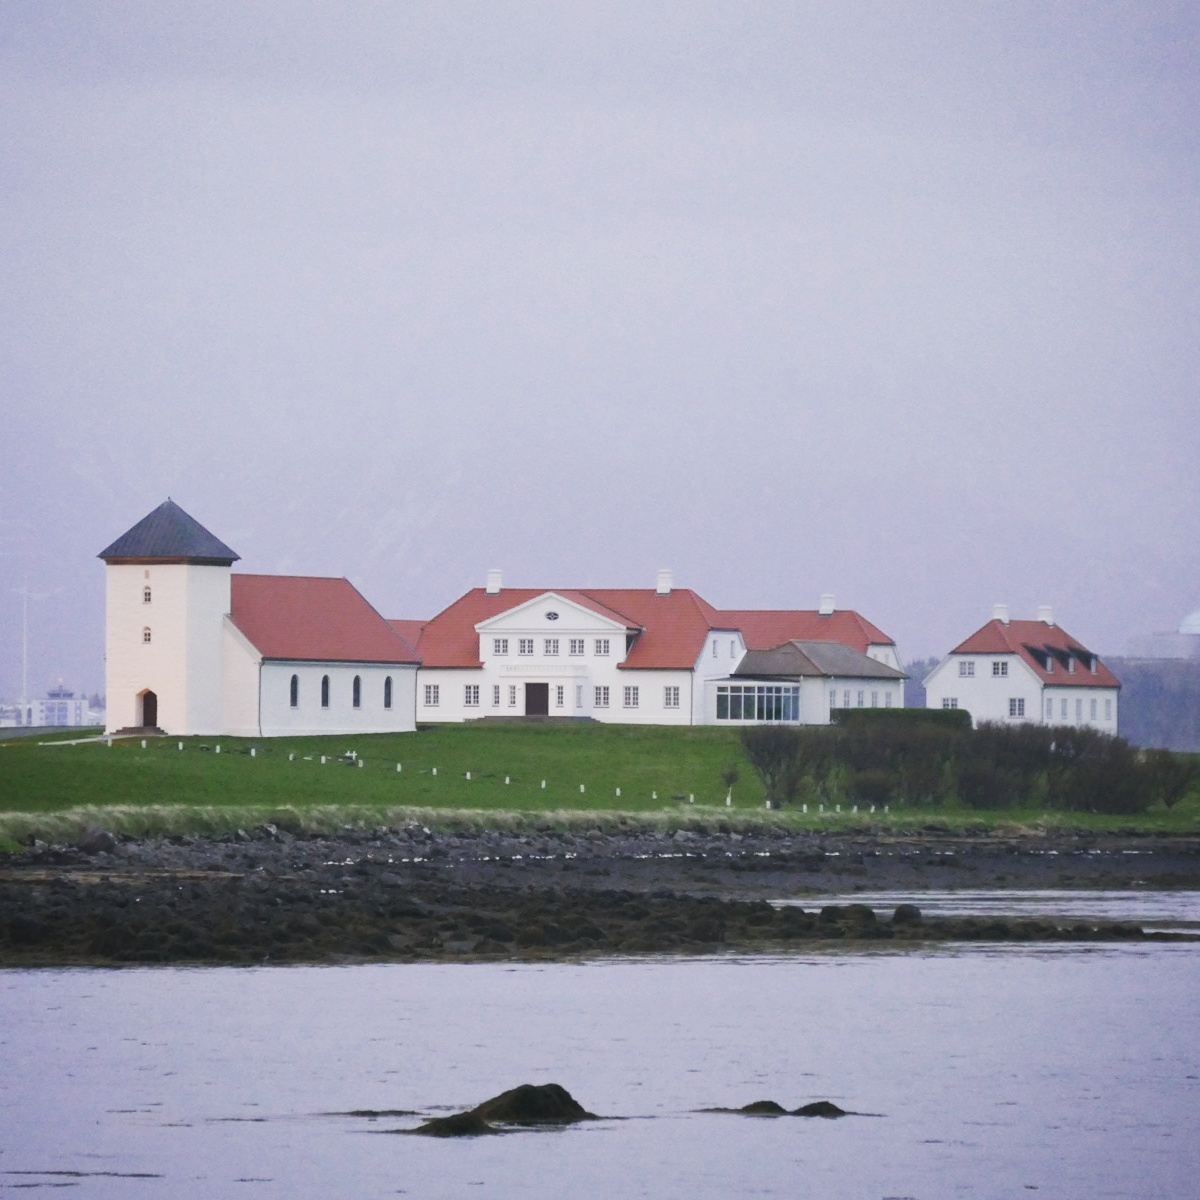 The home of Iceland's president is a good birding spot, even at four in the morning. Noah Strycker